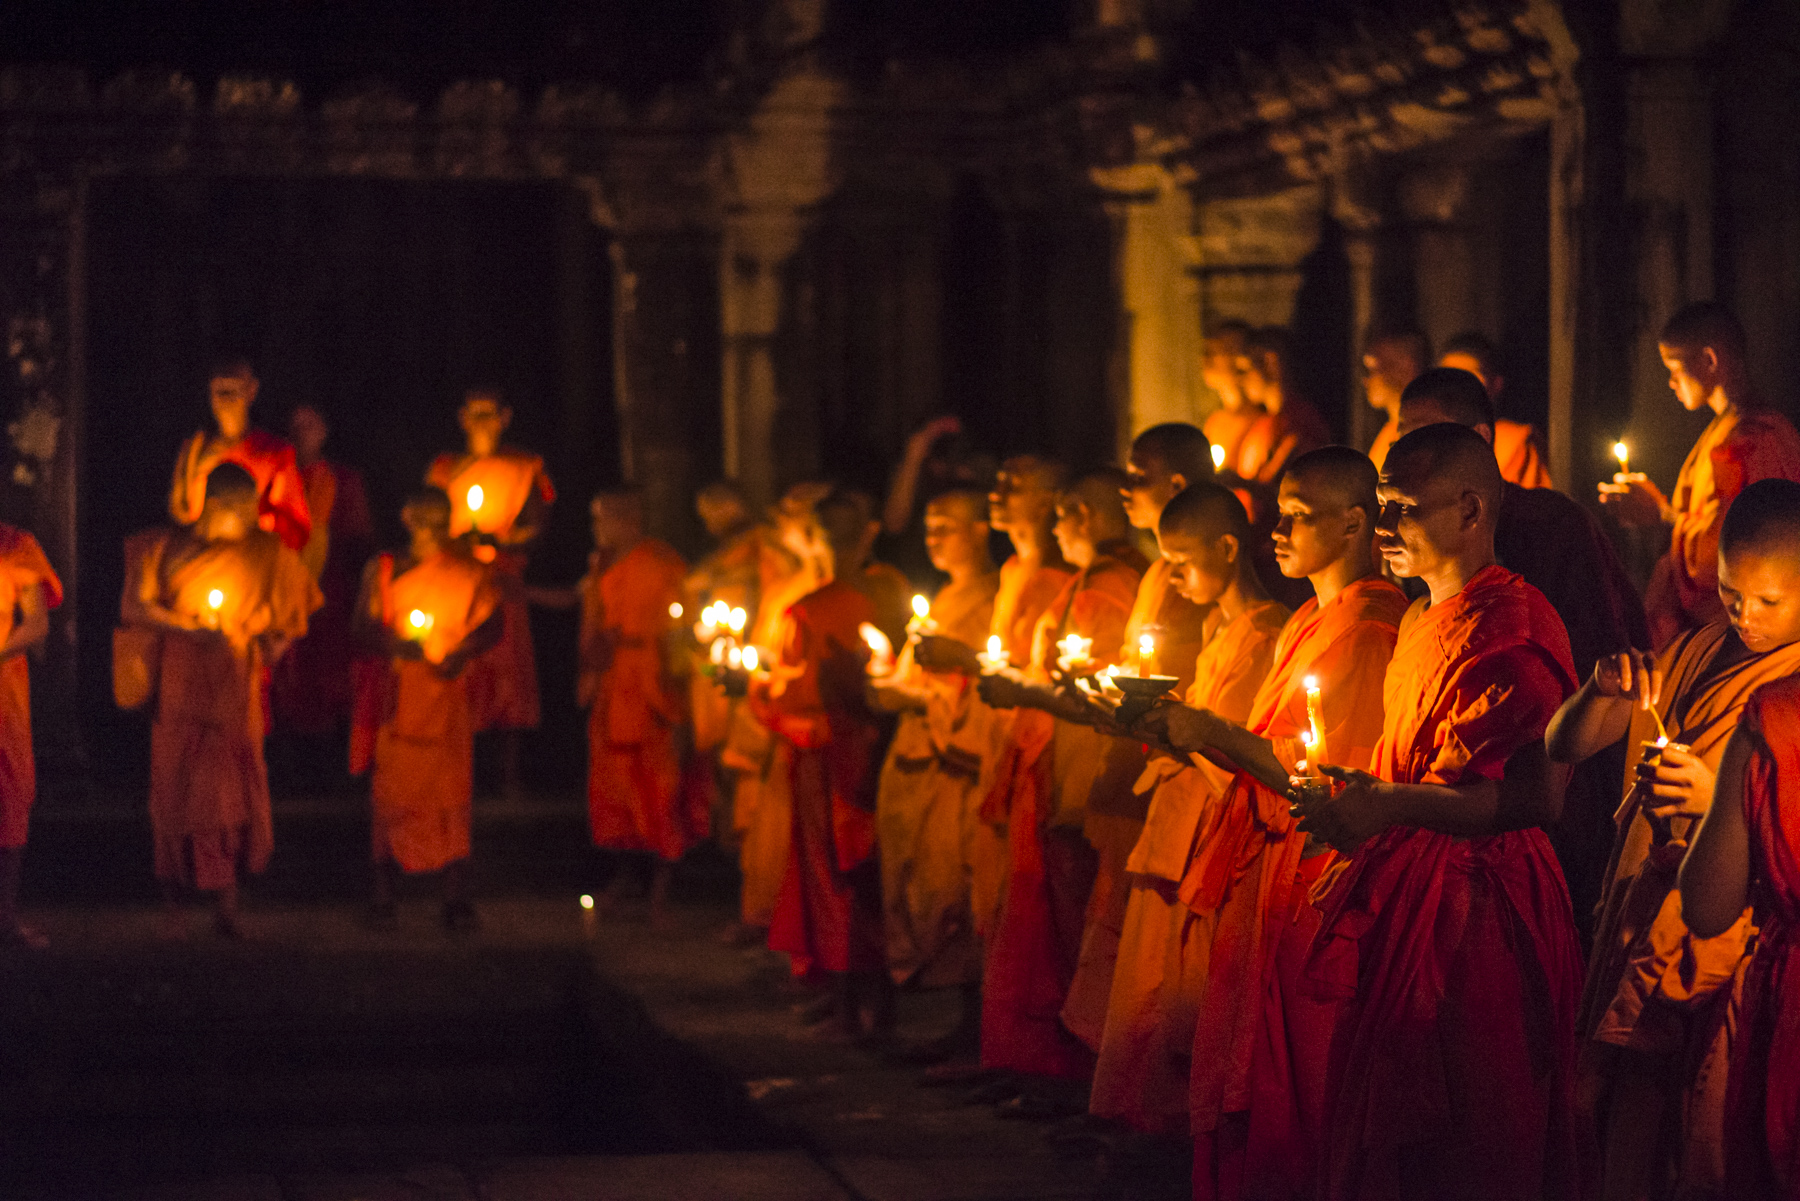 Monks holding candles as they gather in the Gallery of 1,000 Buddhas at Angkor Wat.